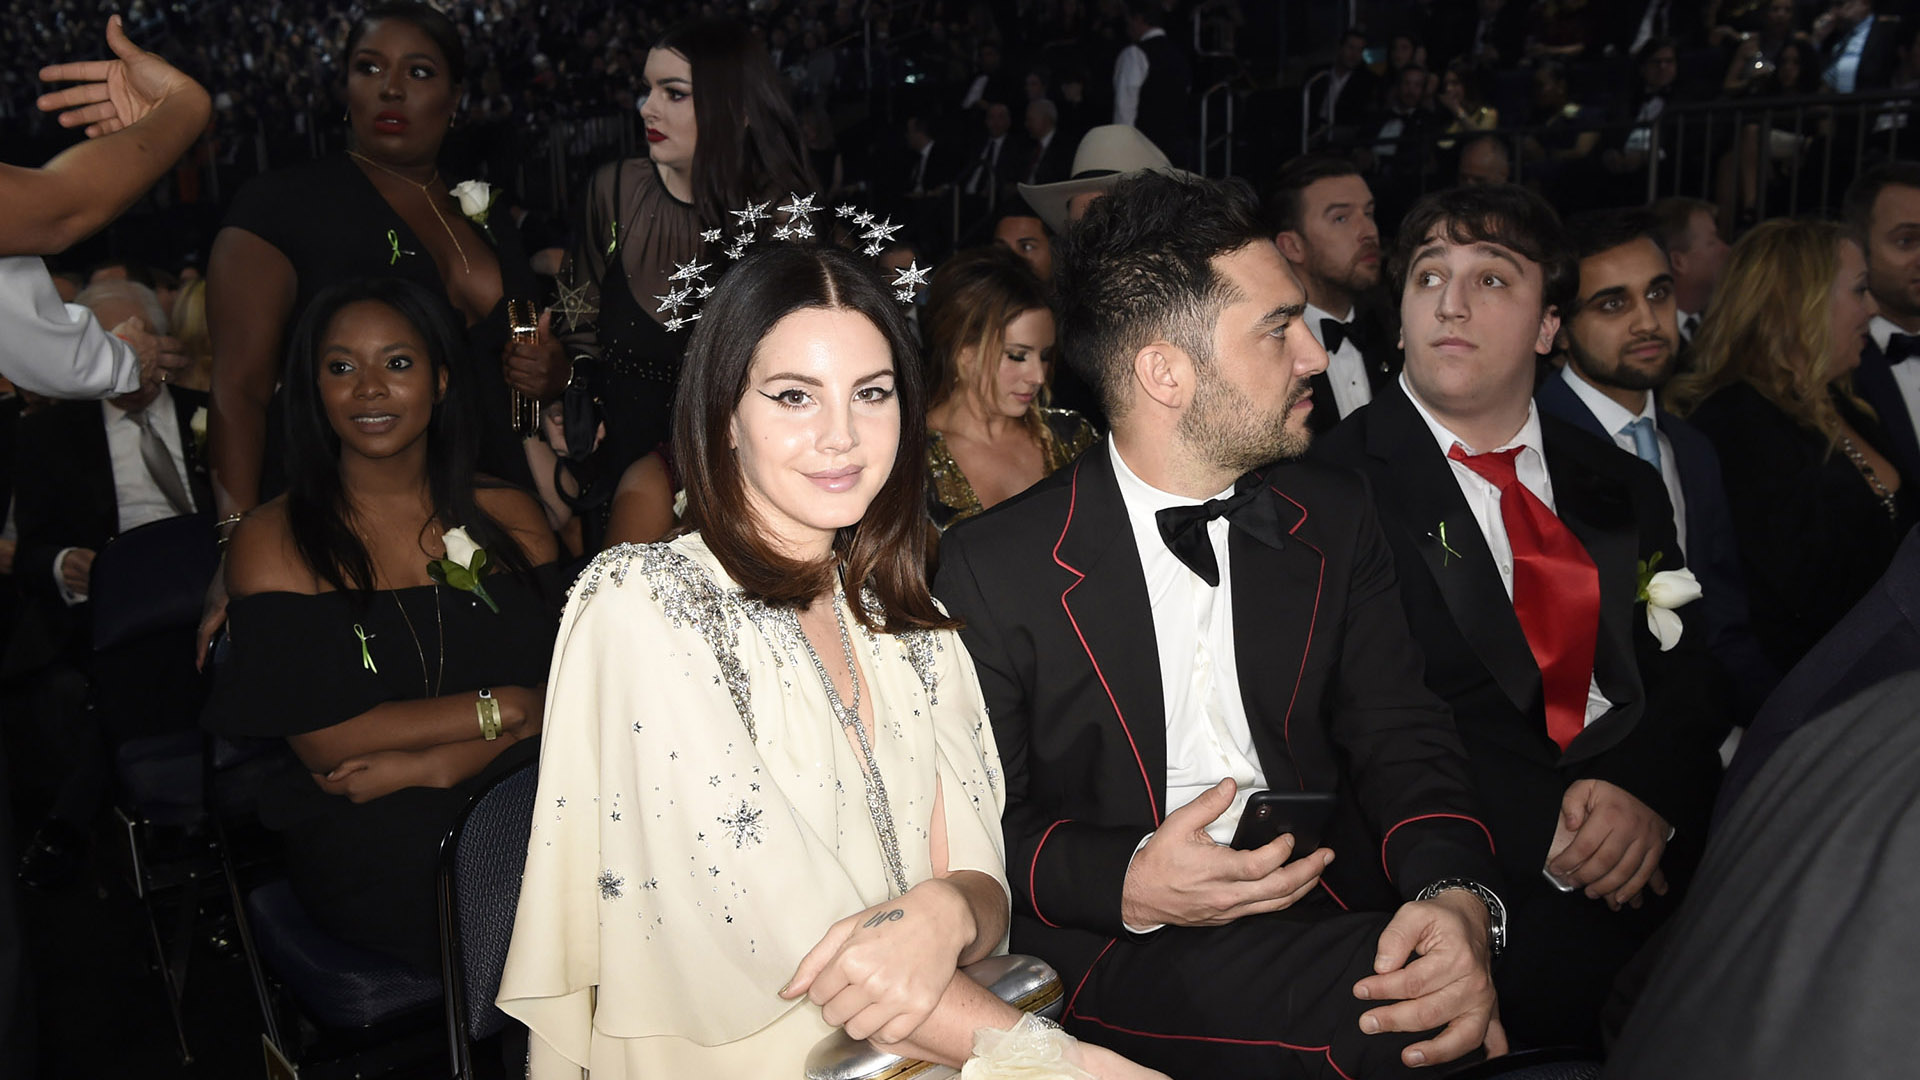 Best Pop Vocal Album nominee Lana Del Rey looks positively angelic in a starry crown while seated at the 60th Annual GRAMMY Awards.